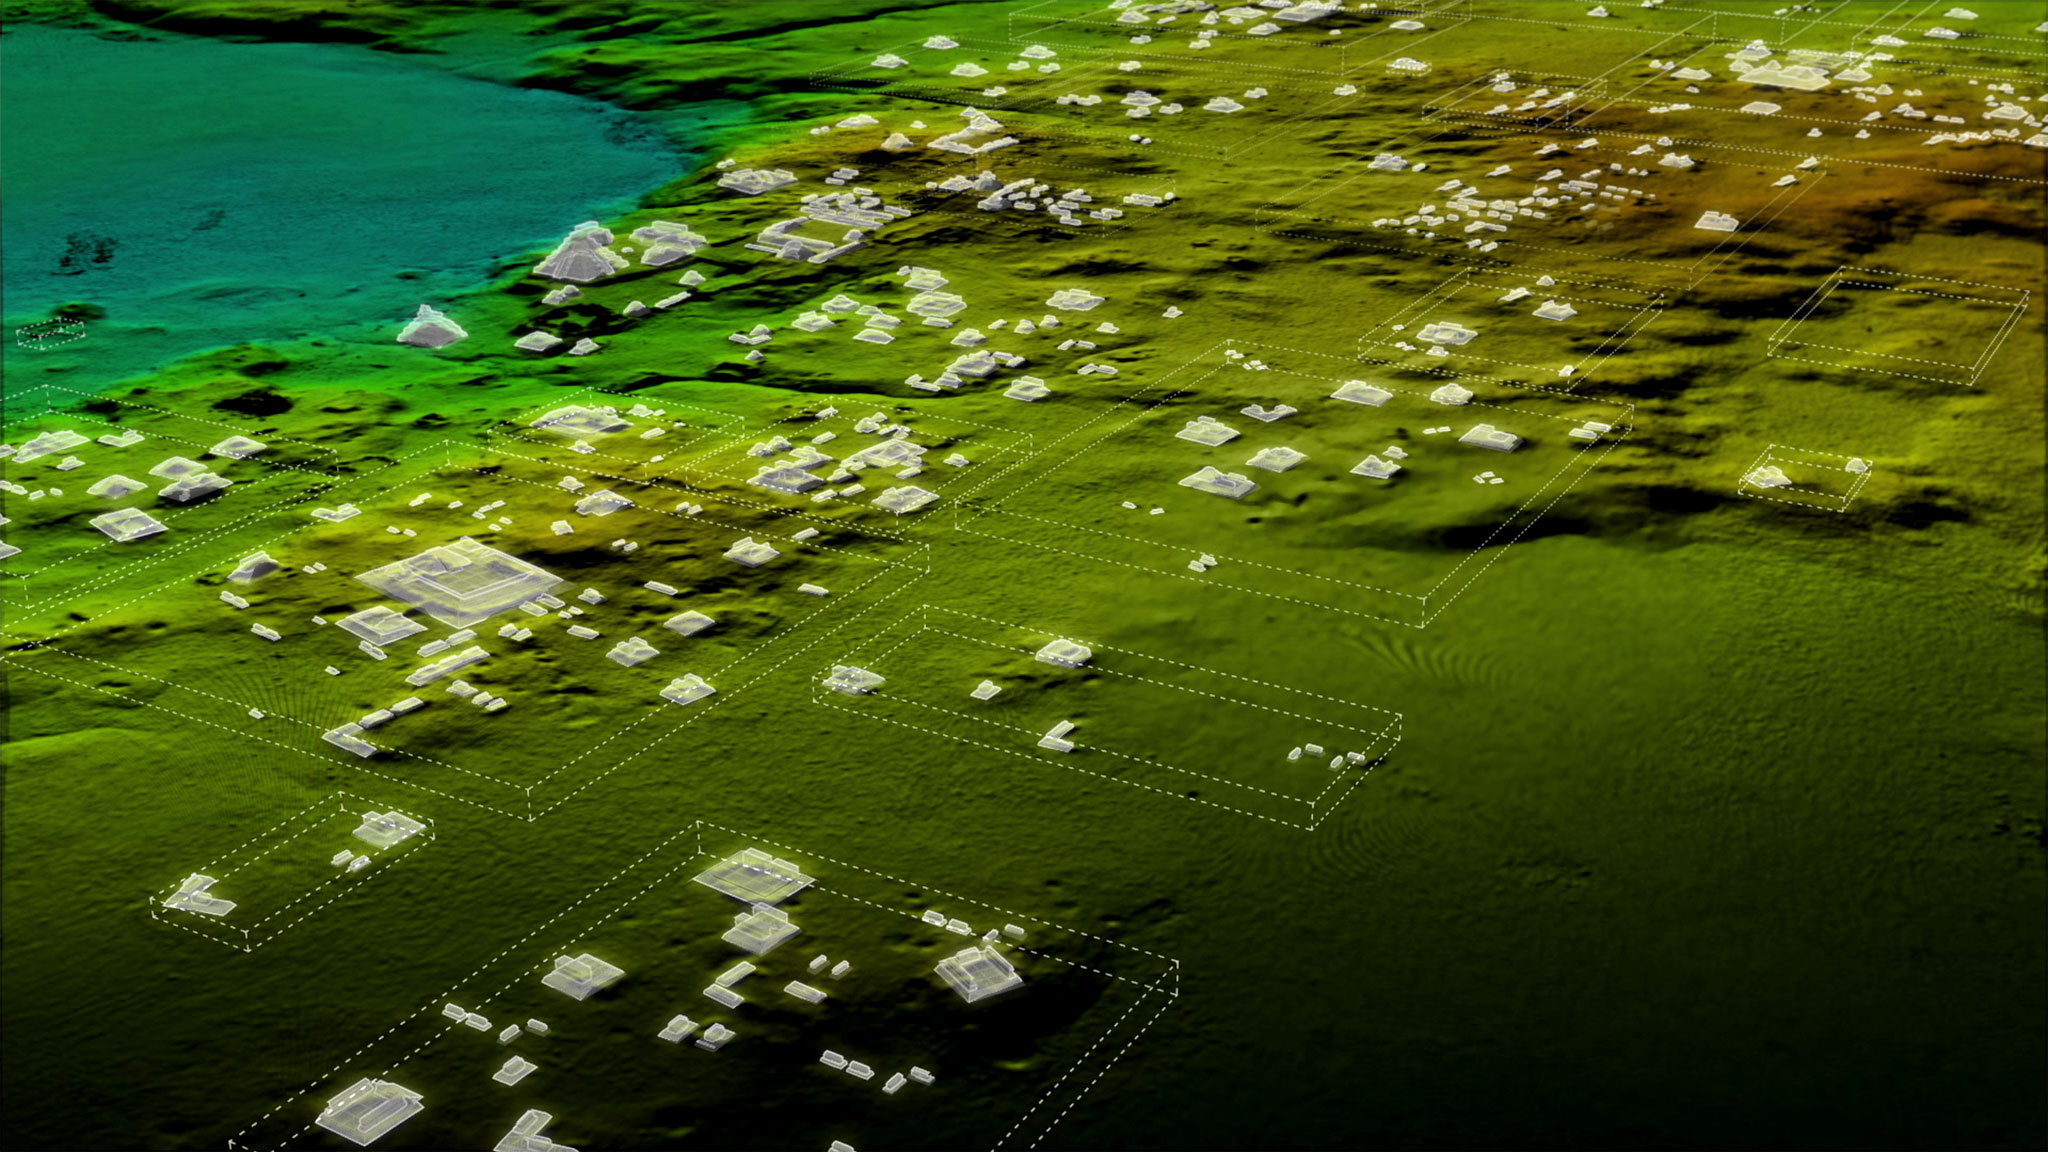 Laser Tech Reveals A Sprawling Ancient Maya Mega